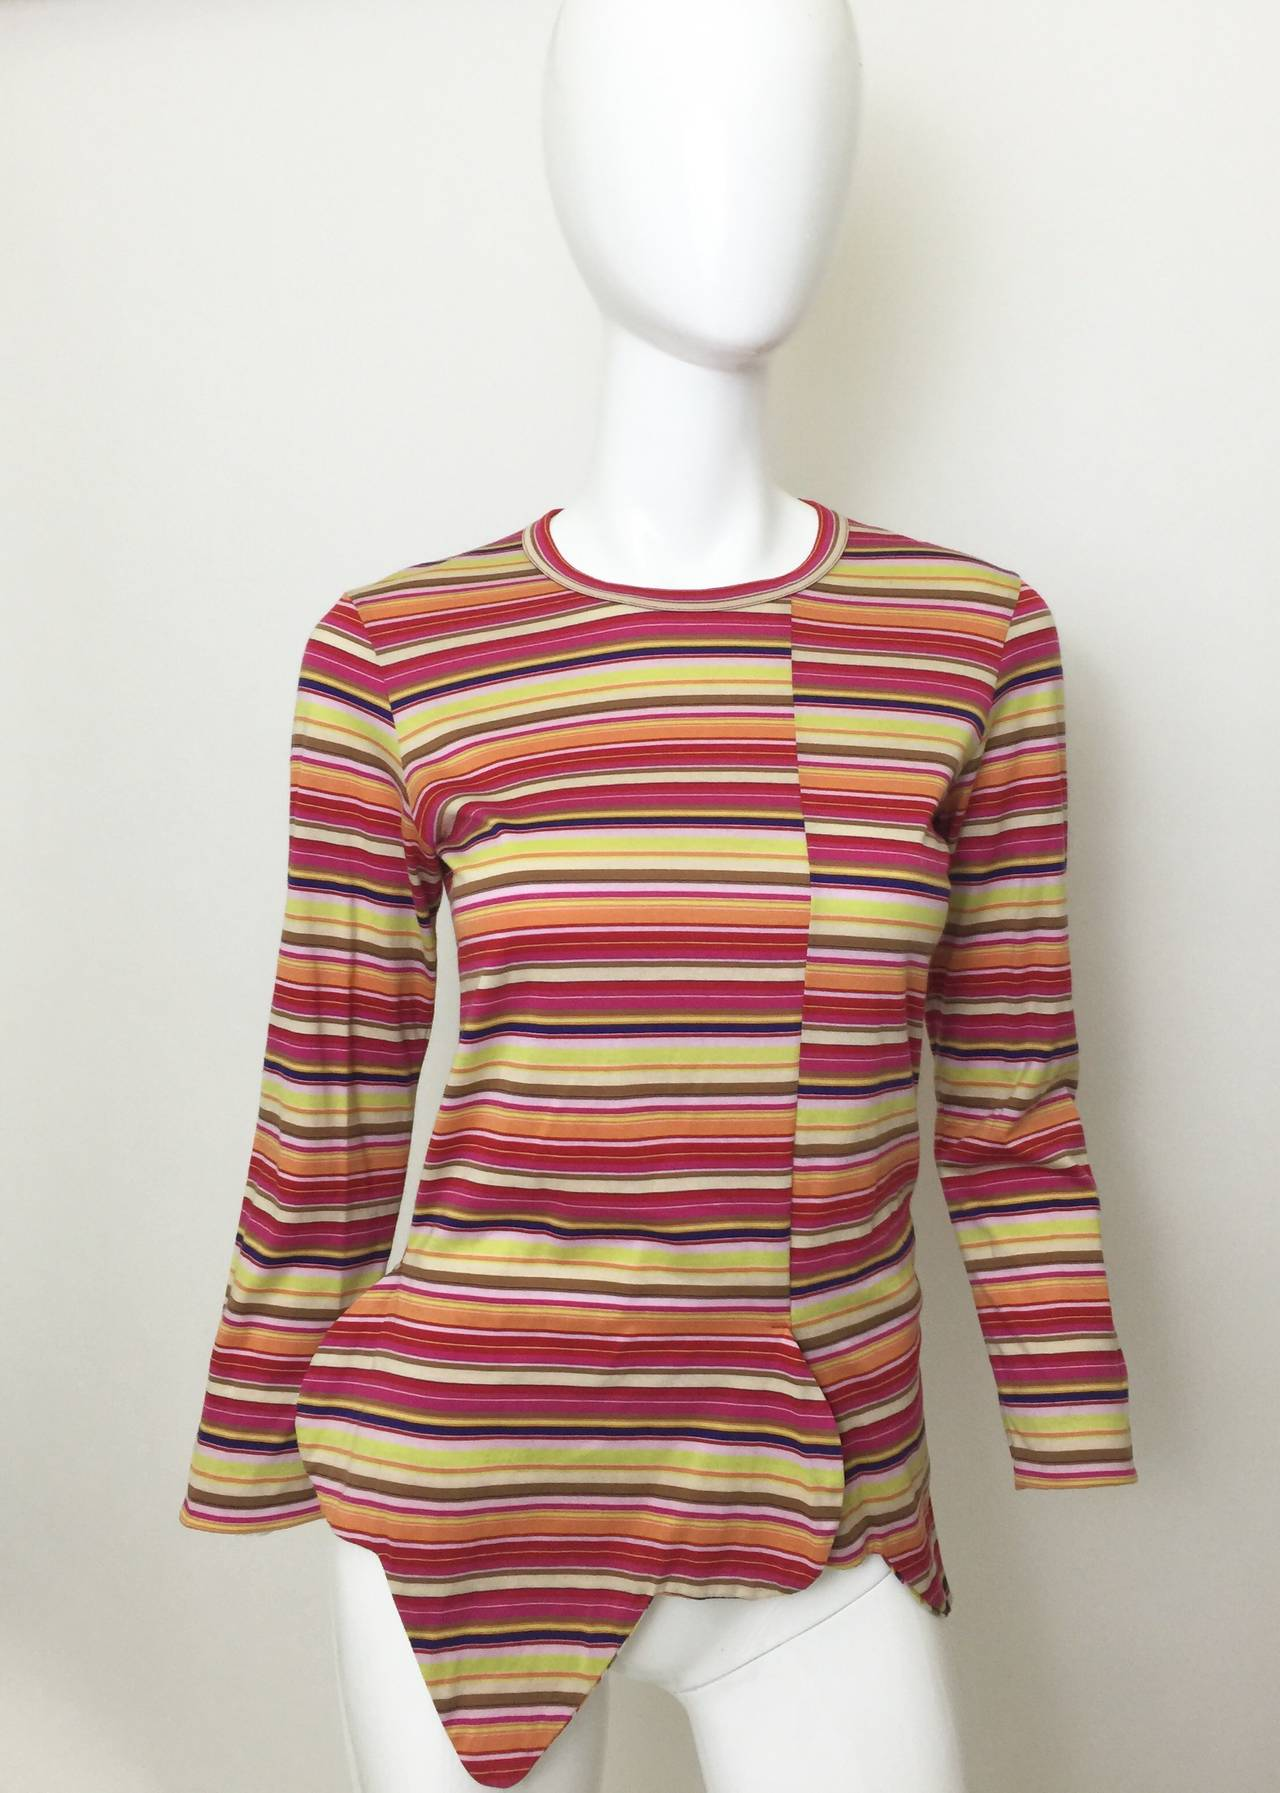 Comme des Garcons multi stripe Shirt 1990's In Excellent Condition For Sale In Boca Raton, FL